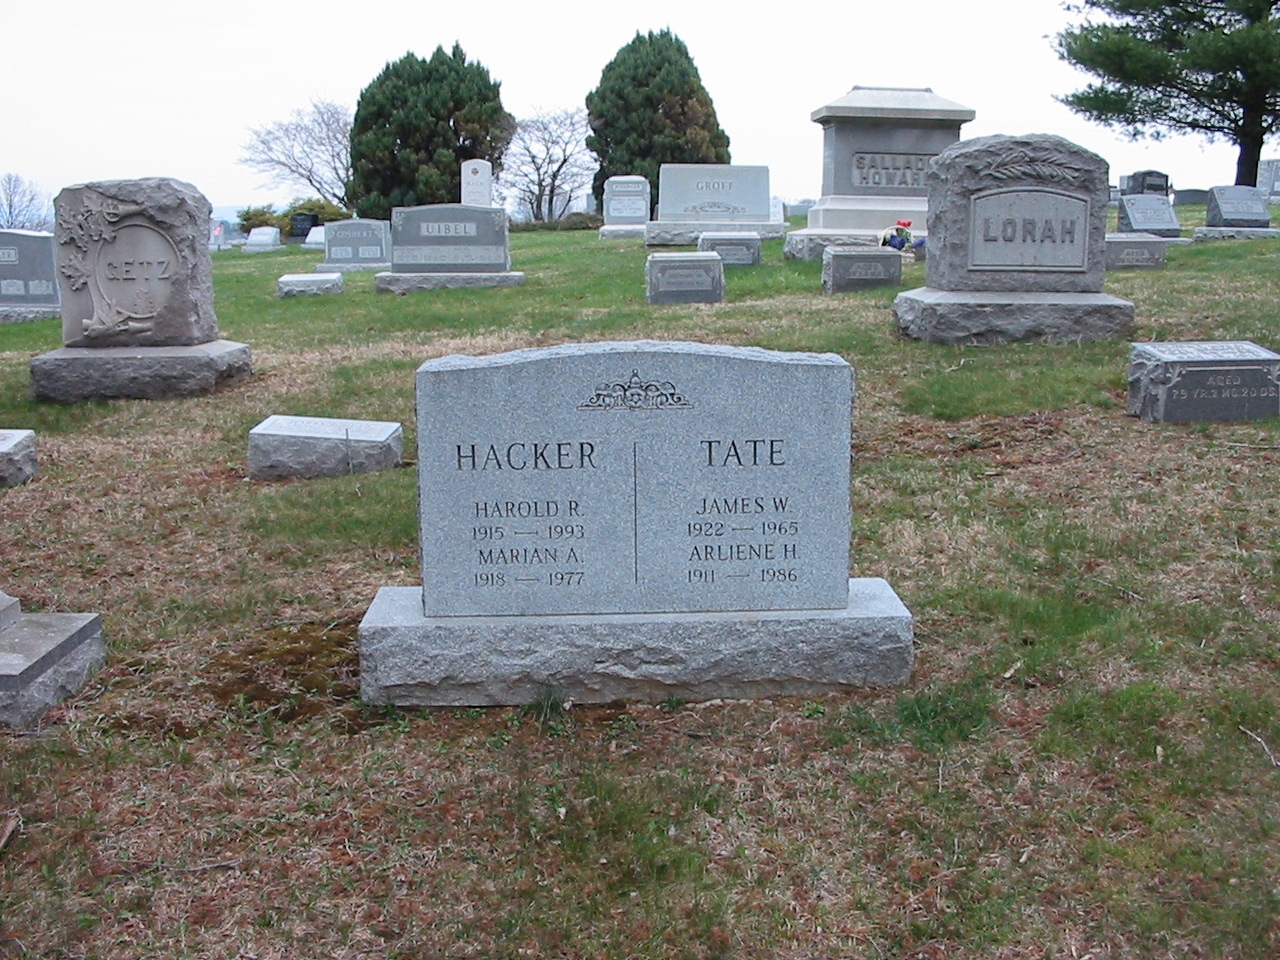 Gravestone of Harold R. and Marian A. Hacker and James W. and Arlene H. Tate